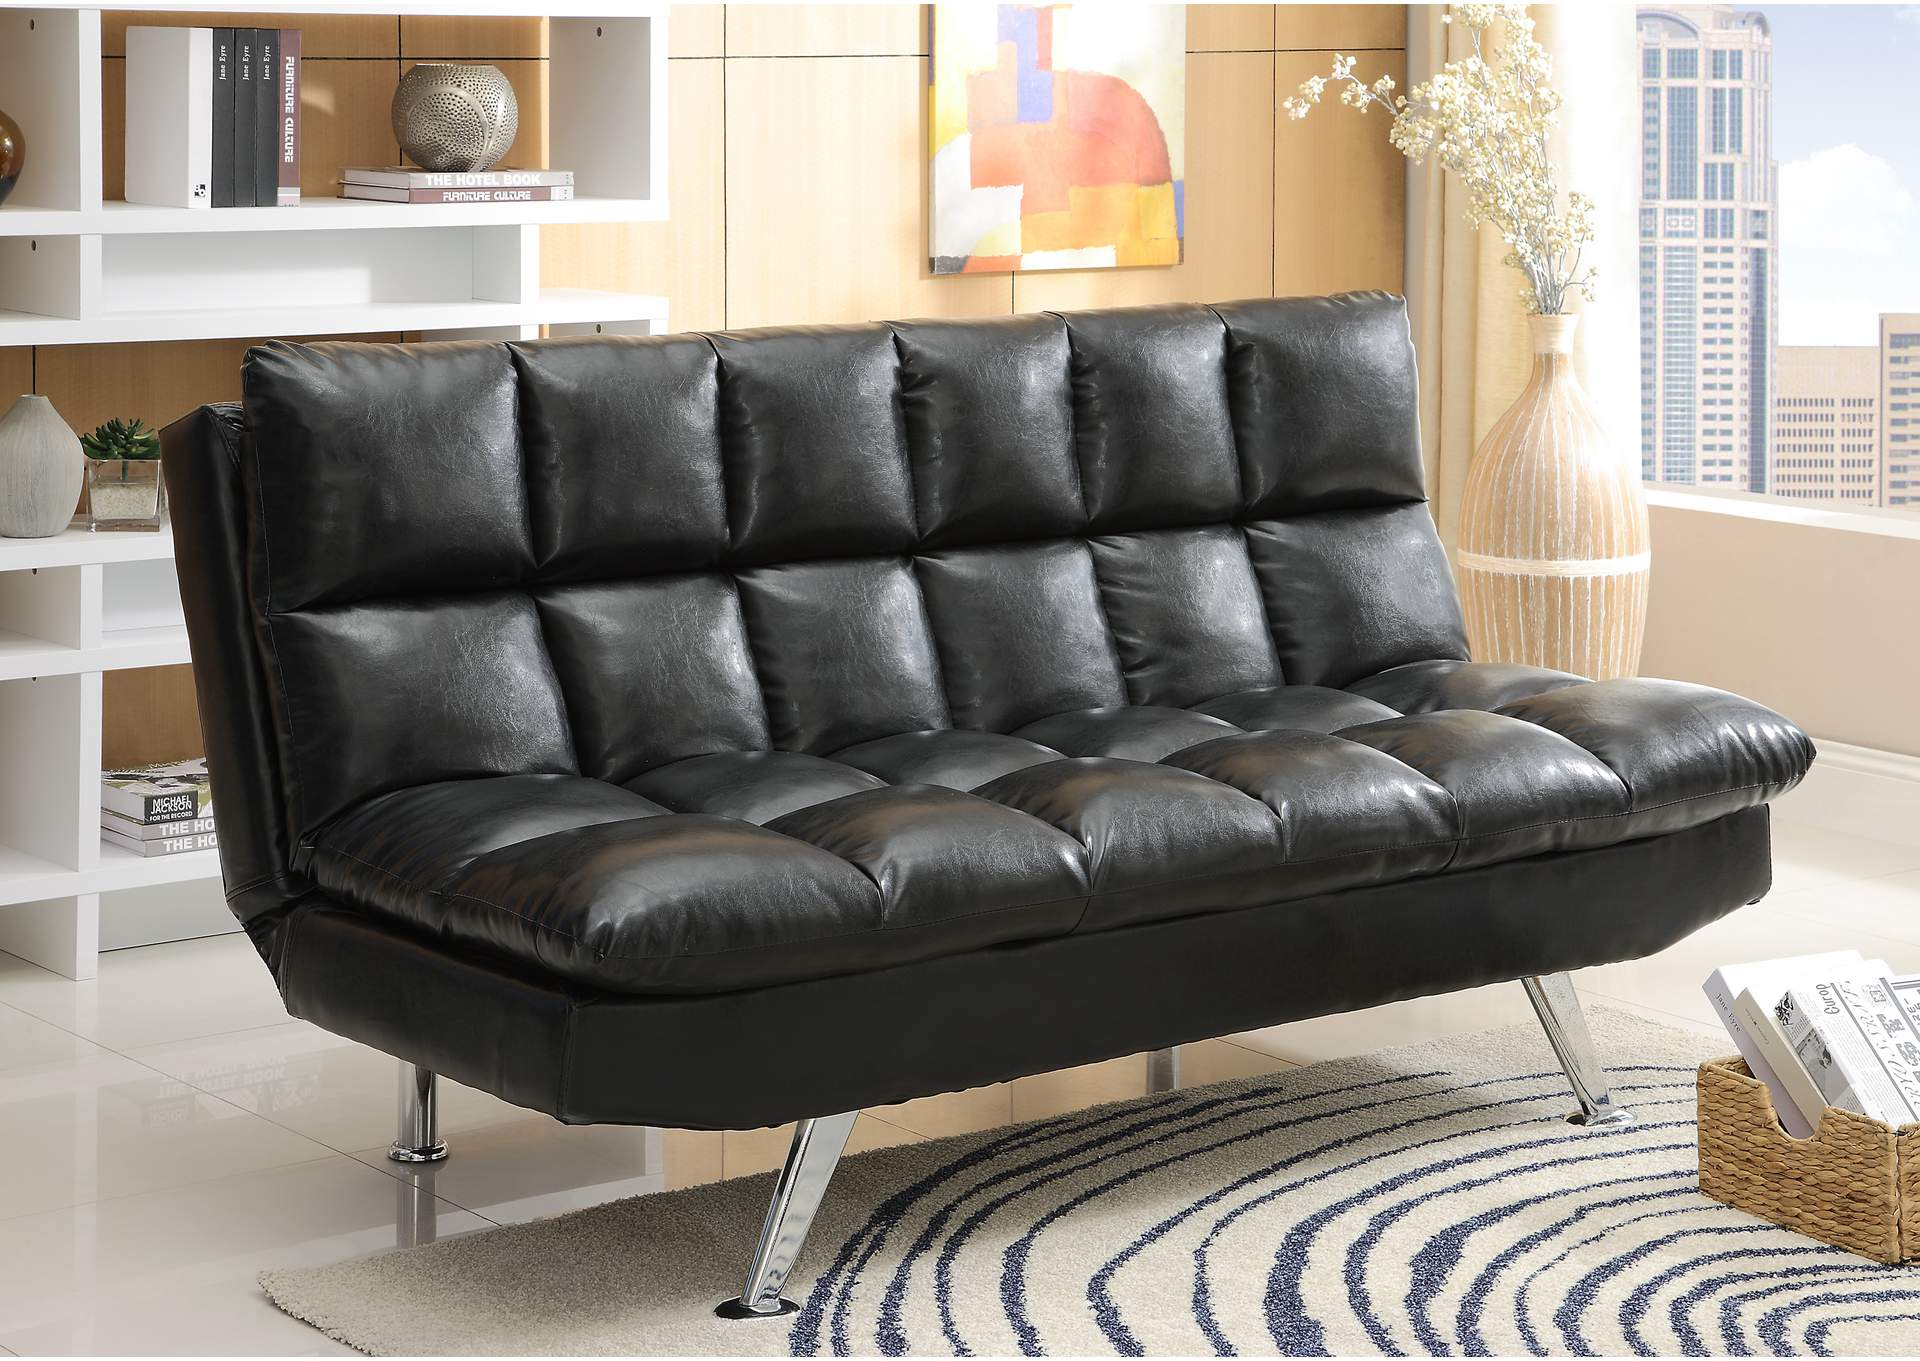 National Furniture Outlet Westwego Model National Furniture Outlet  Westwego La Sundown Black Adjustable Sofa